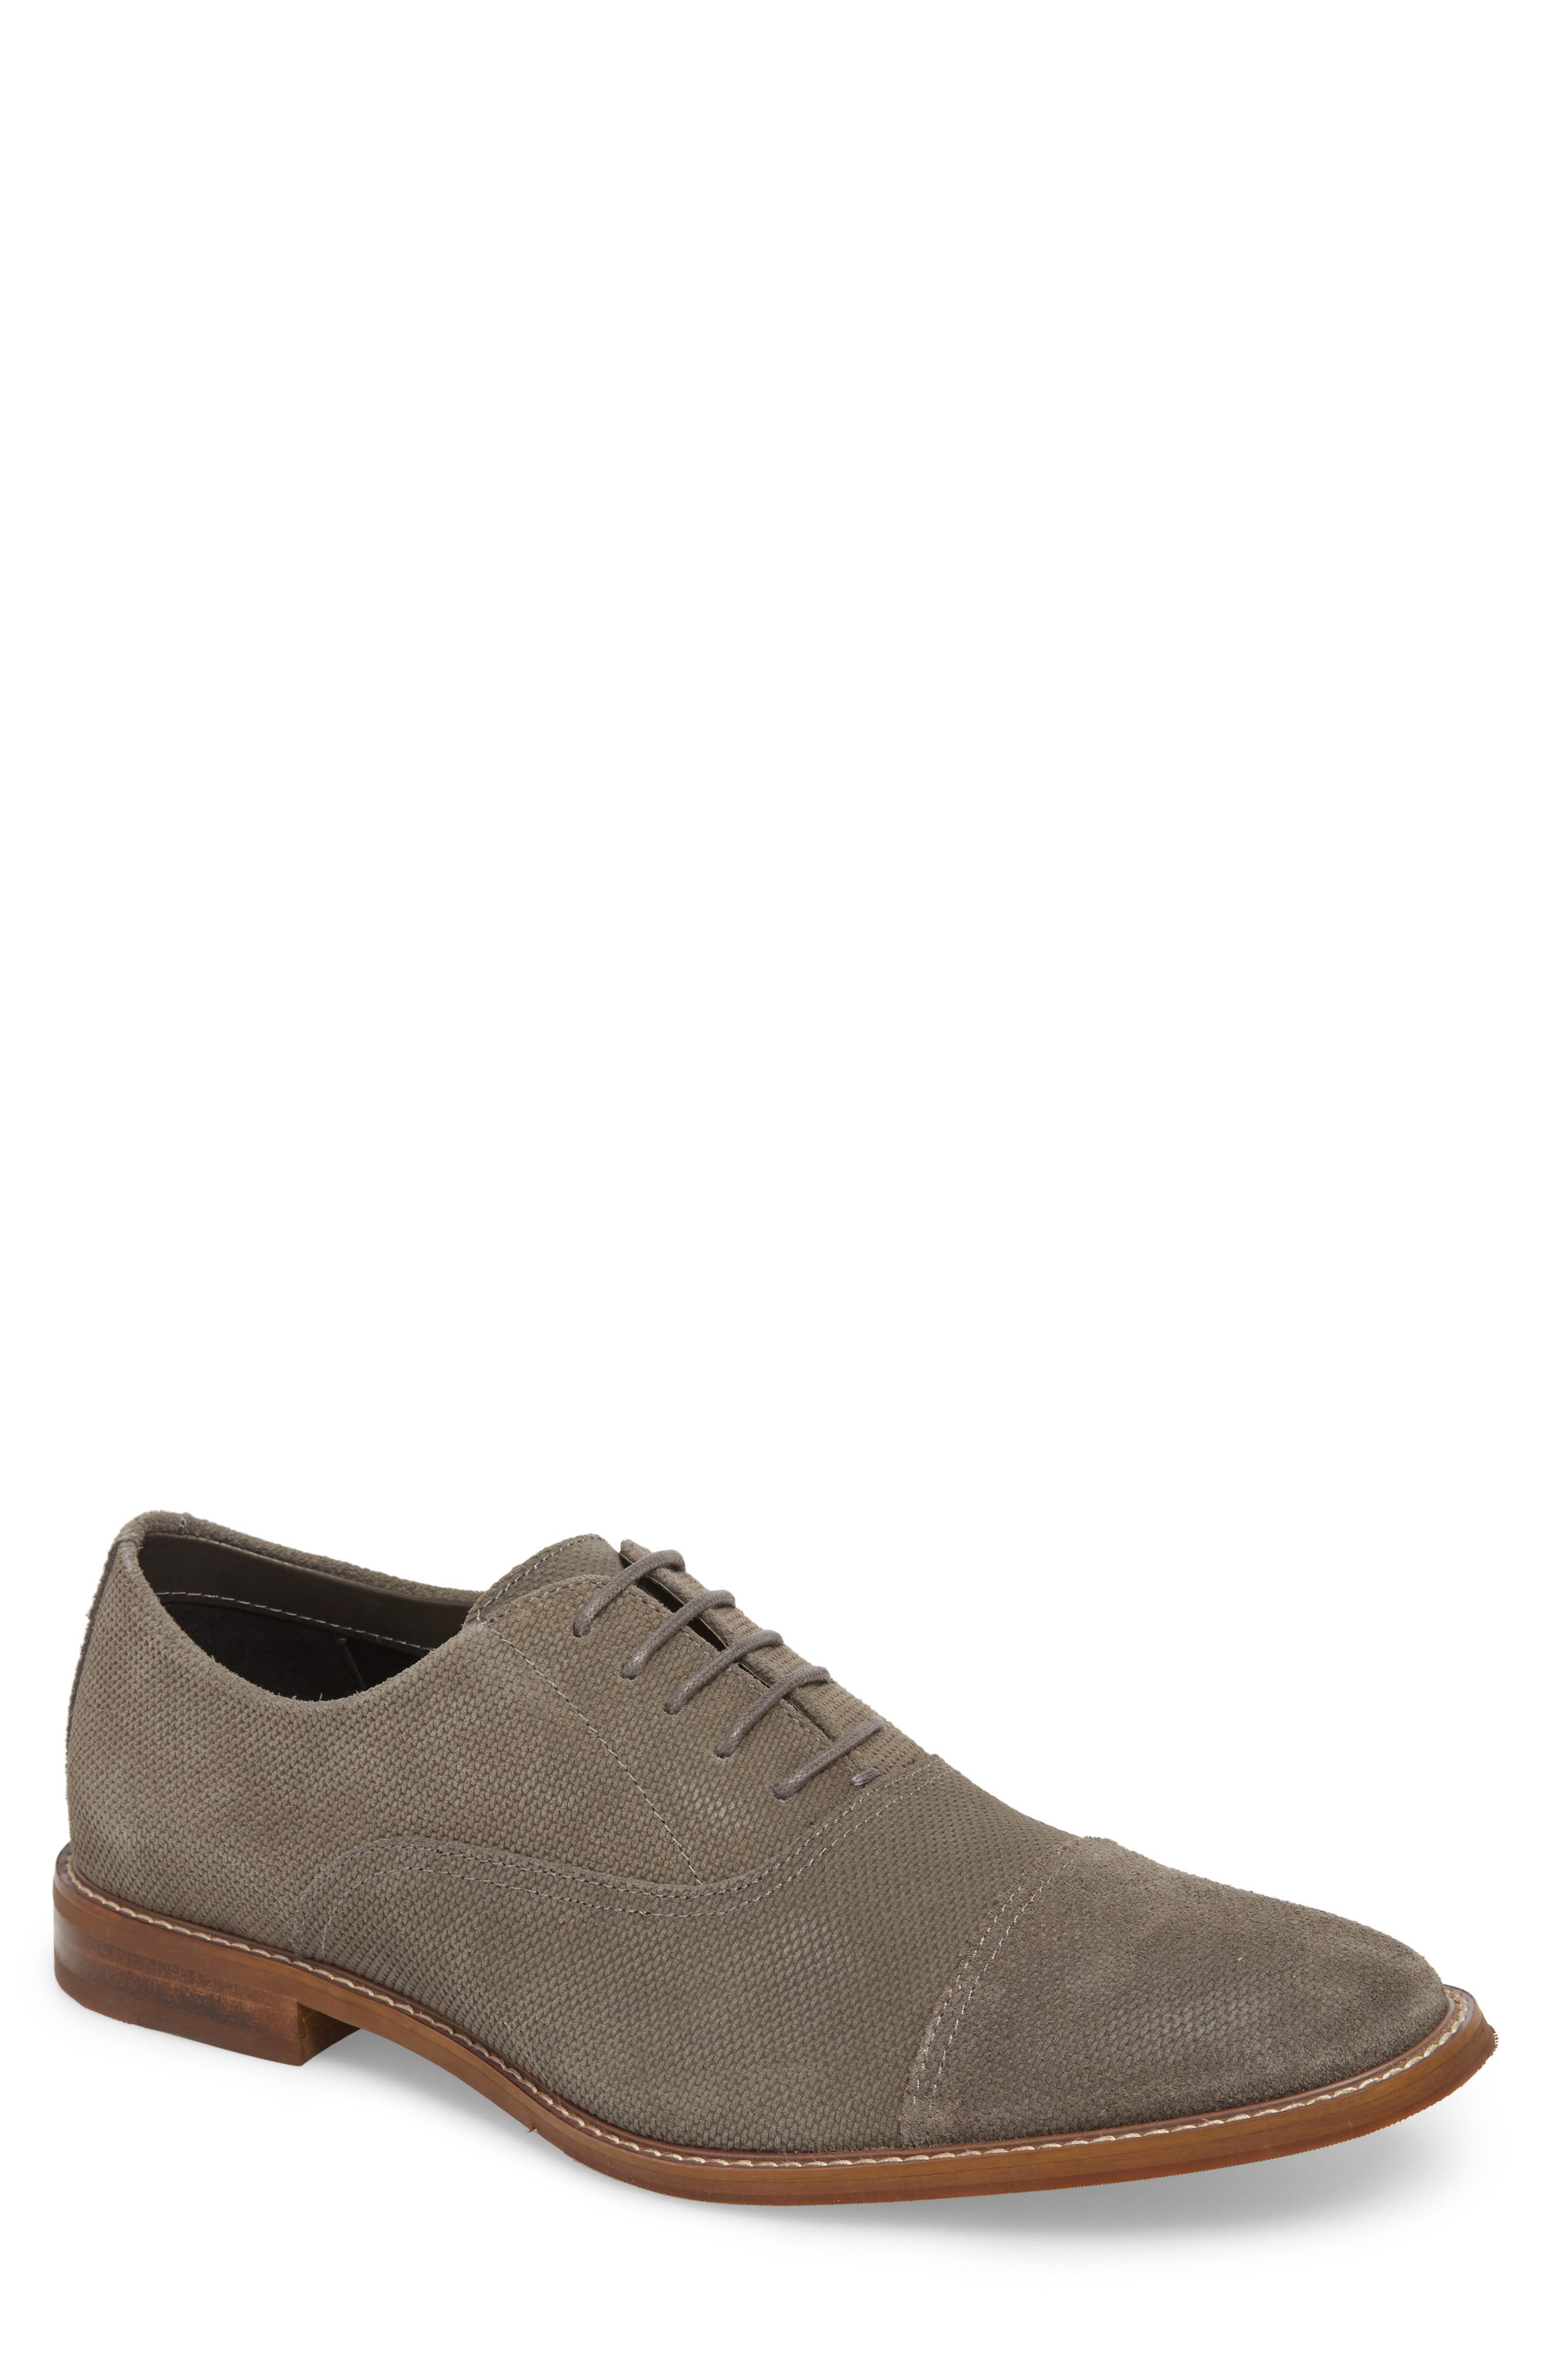 Ravenna Cap Toe Oxford,                             Main thumbnail 1, color,                             Taupe Suede